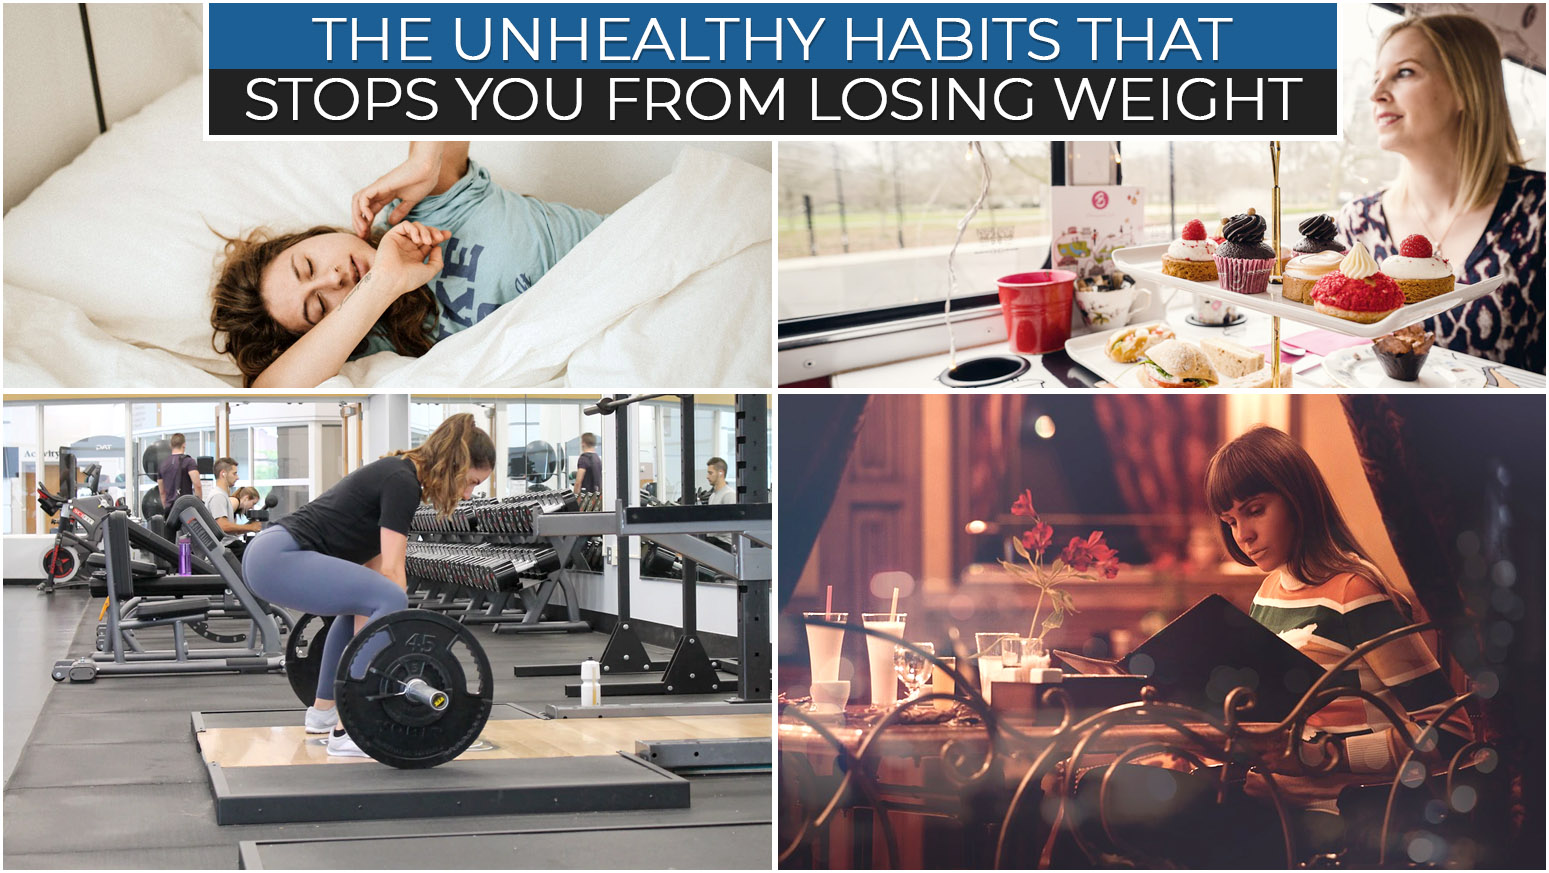 THE UNHEALTHY HABITS THAT STOPS YOU FROM LOSING WEIGHT